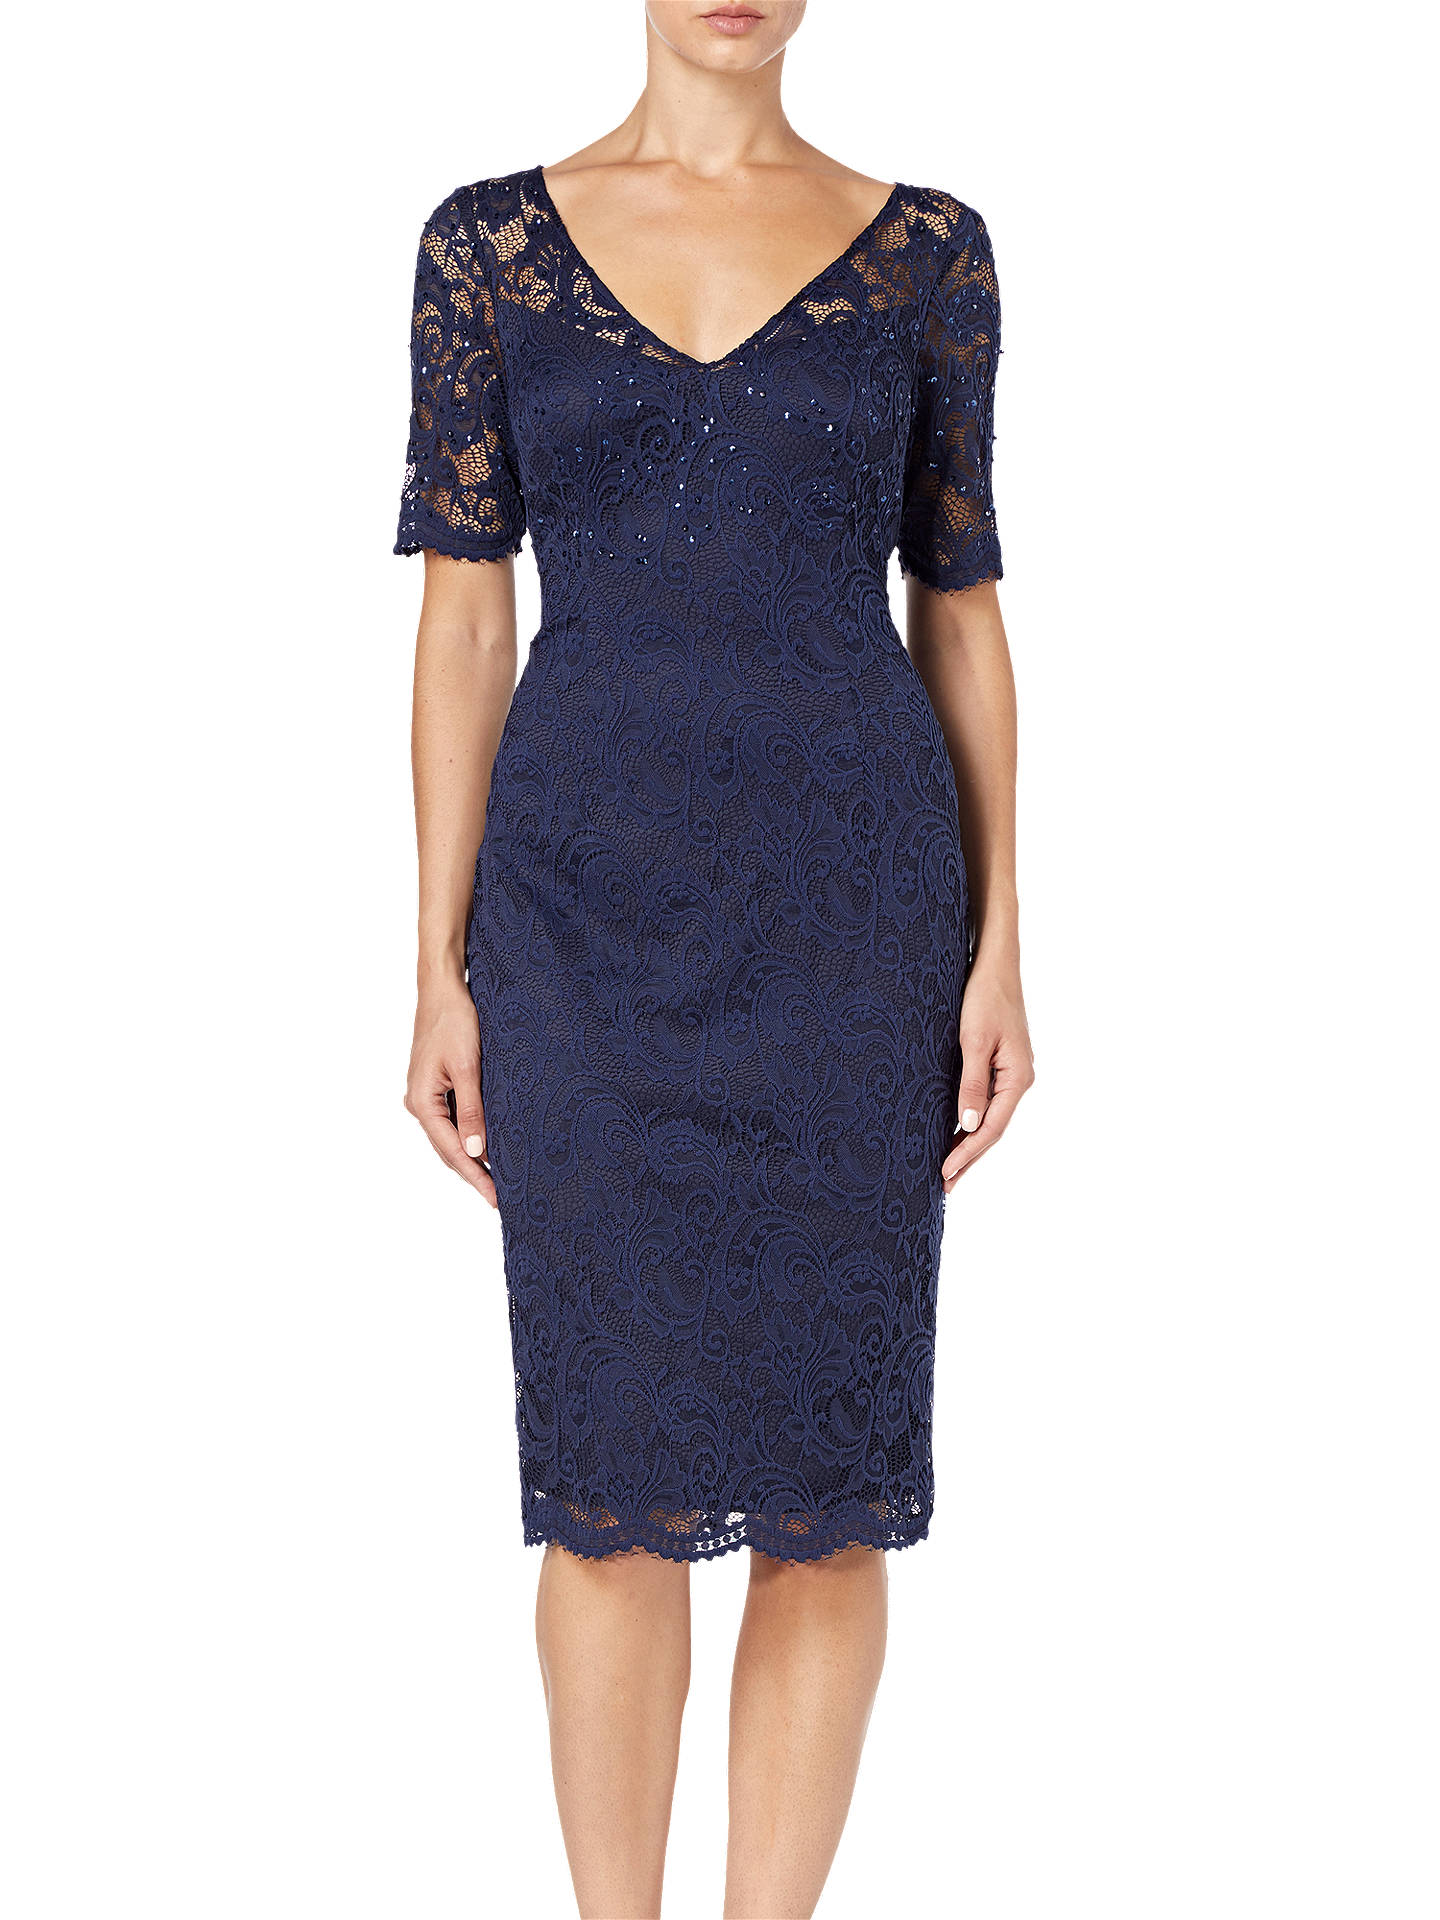 Buy Adrianna Papell Lace Overlay Cocktail Dress, Midnight Blue, 20 Online at johnlewis.com